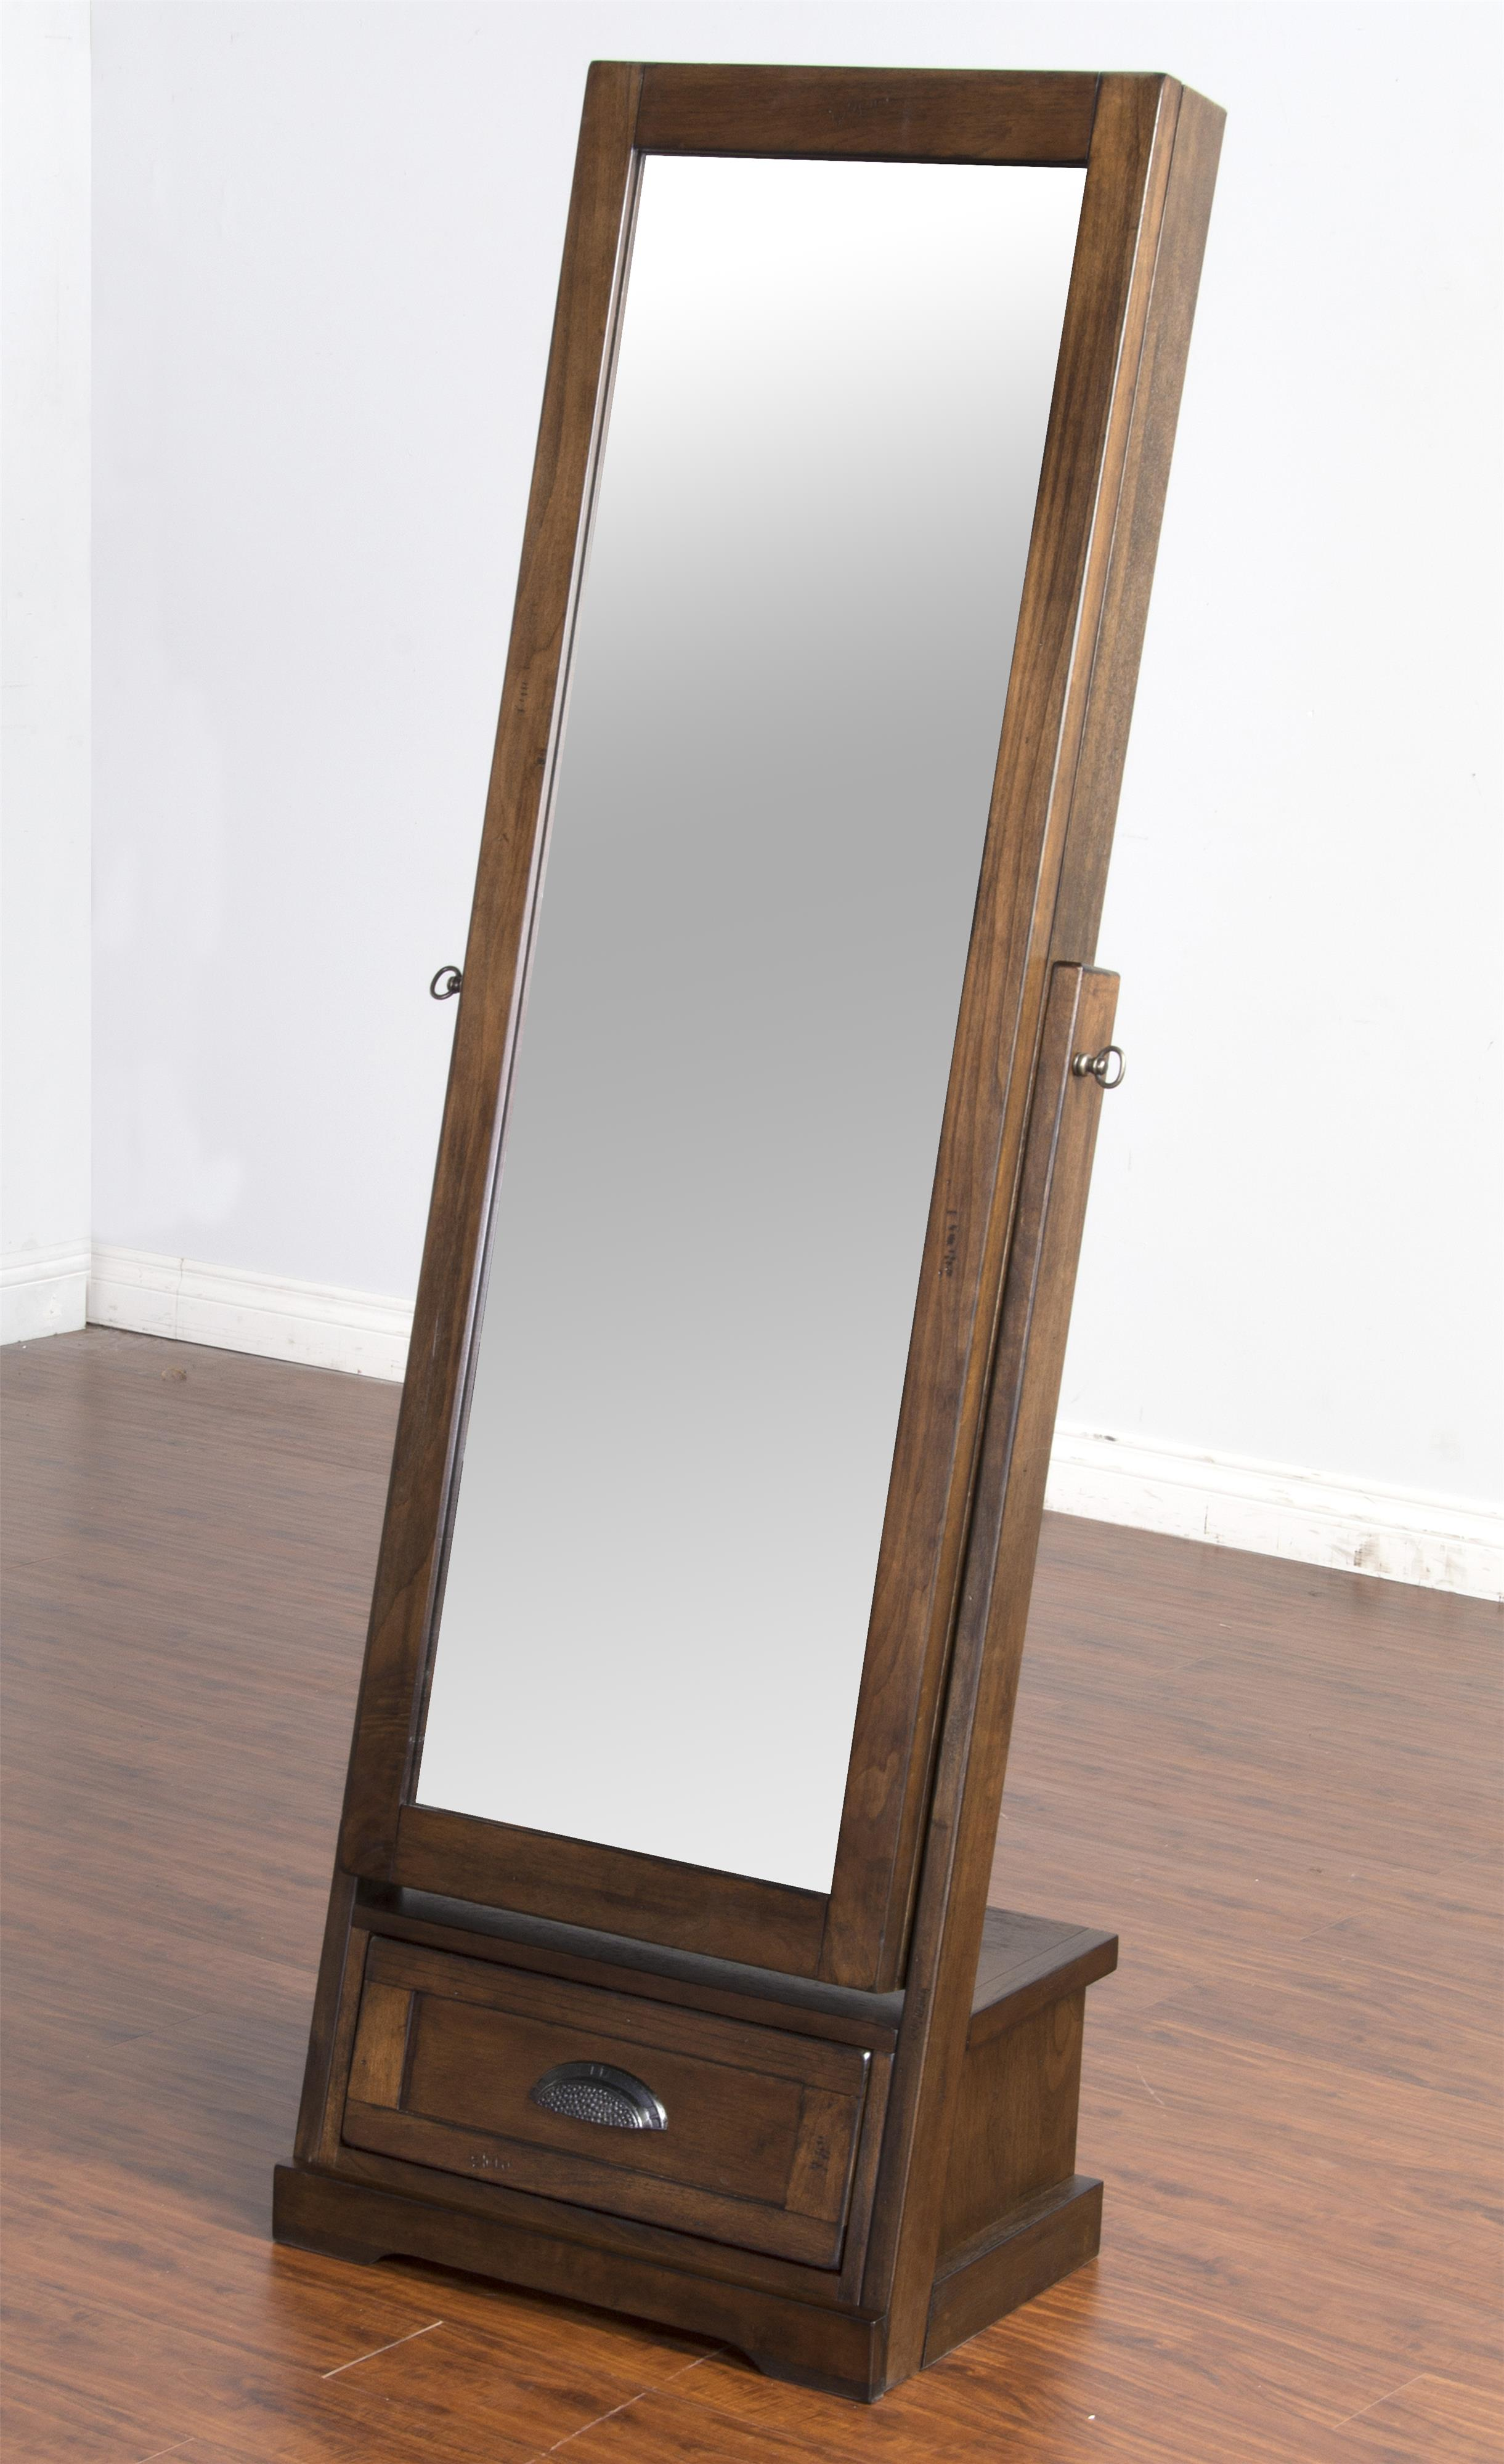 Mirror Stand Designs : Sliding mirror stand with jewelry storage by sunny designs